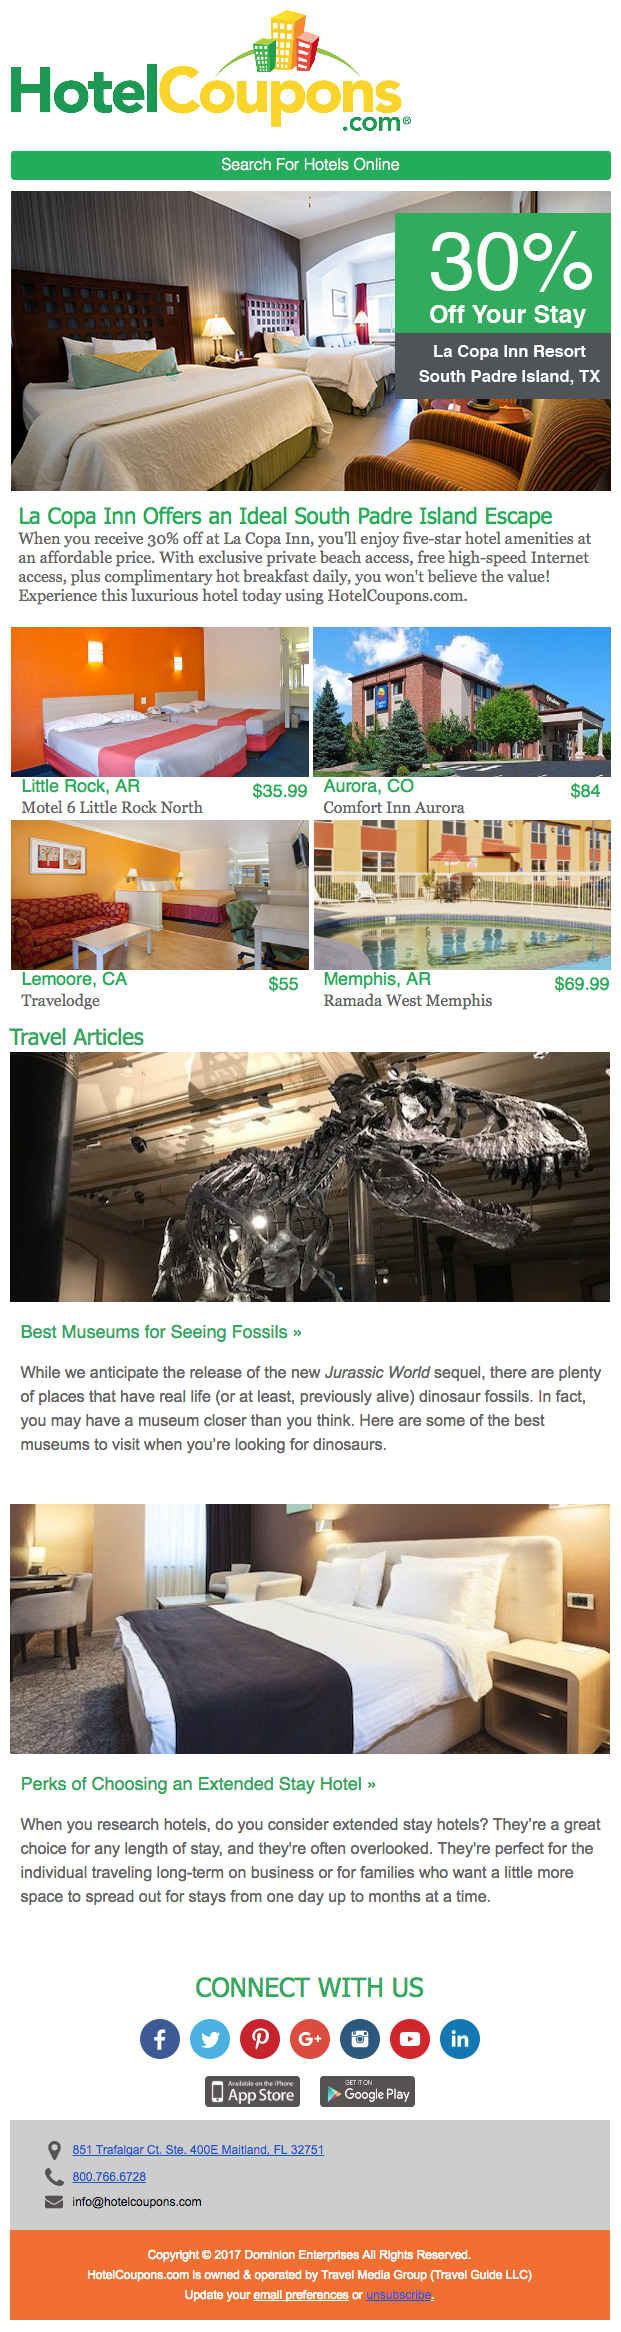 HotelCoupons National Newsletter